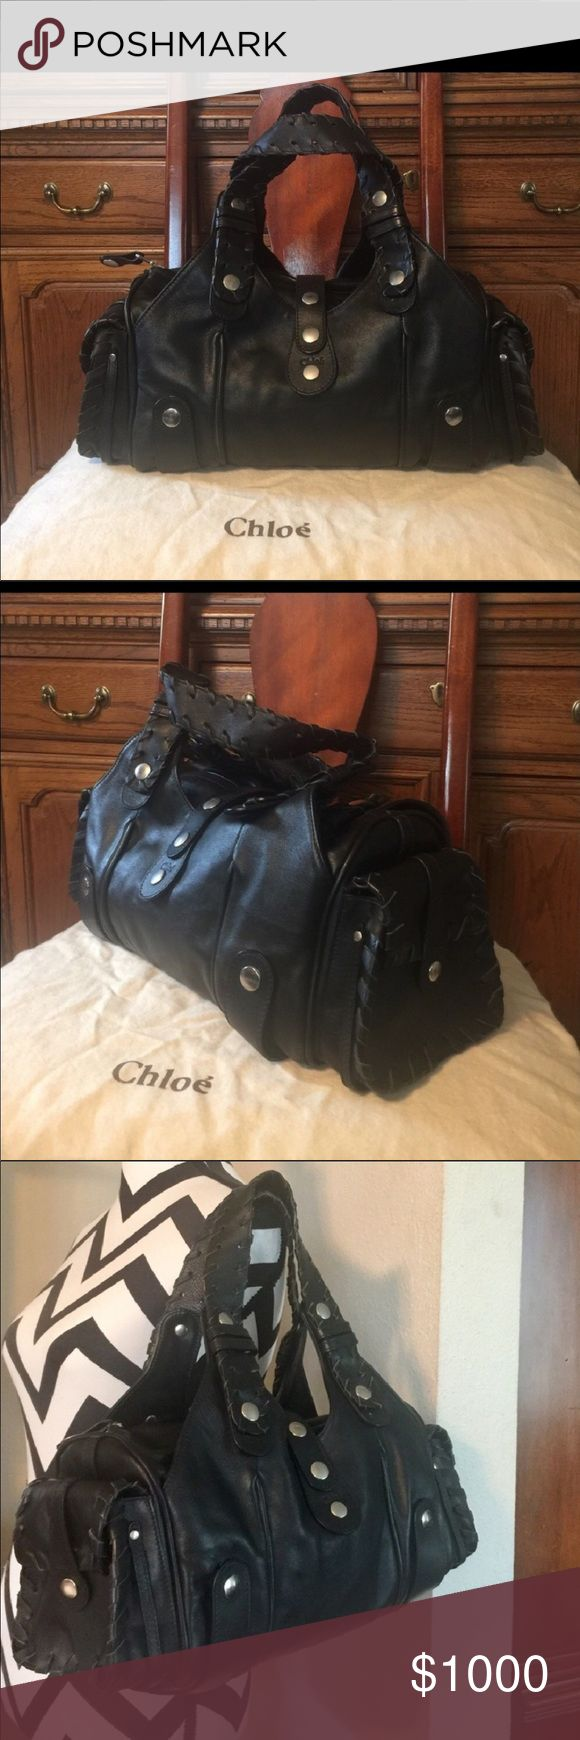 Black leather chloe Silverado bag Brand new black..chloe Silverado bag perfect brand new condition! Black leather soft!! No scratches!! Looks like tags were literally just taken off!! Trade value $1500 Bags Shoulder Bags